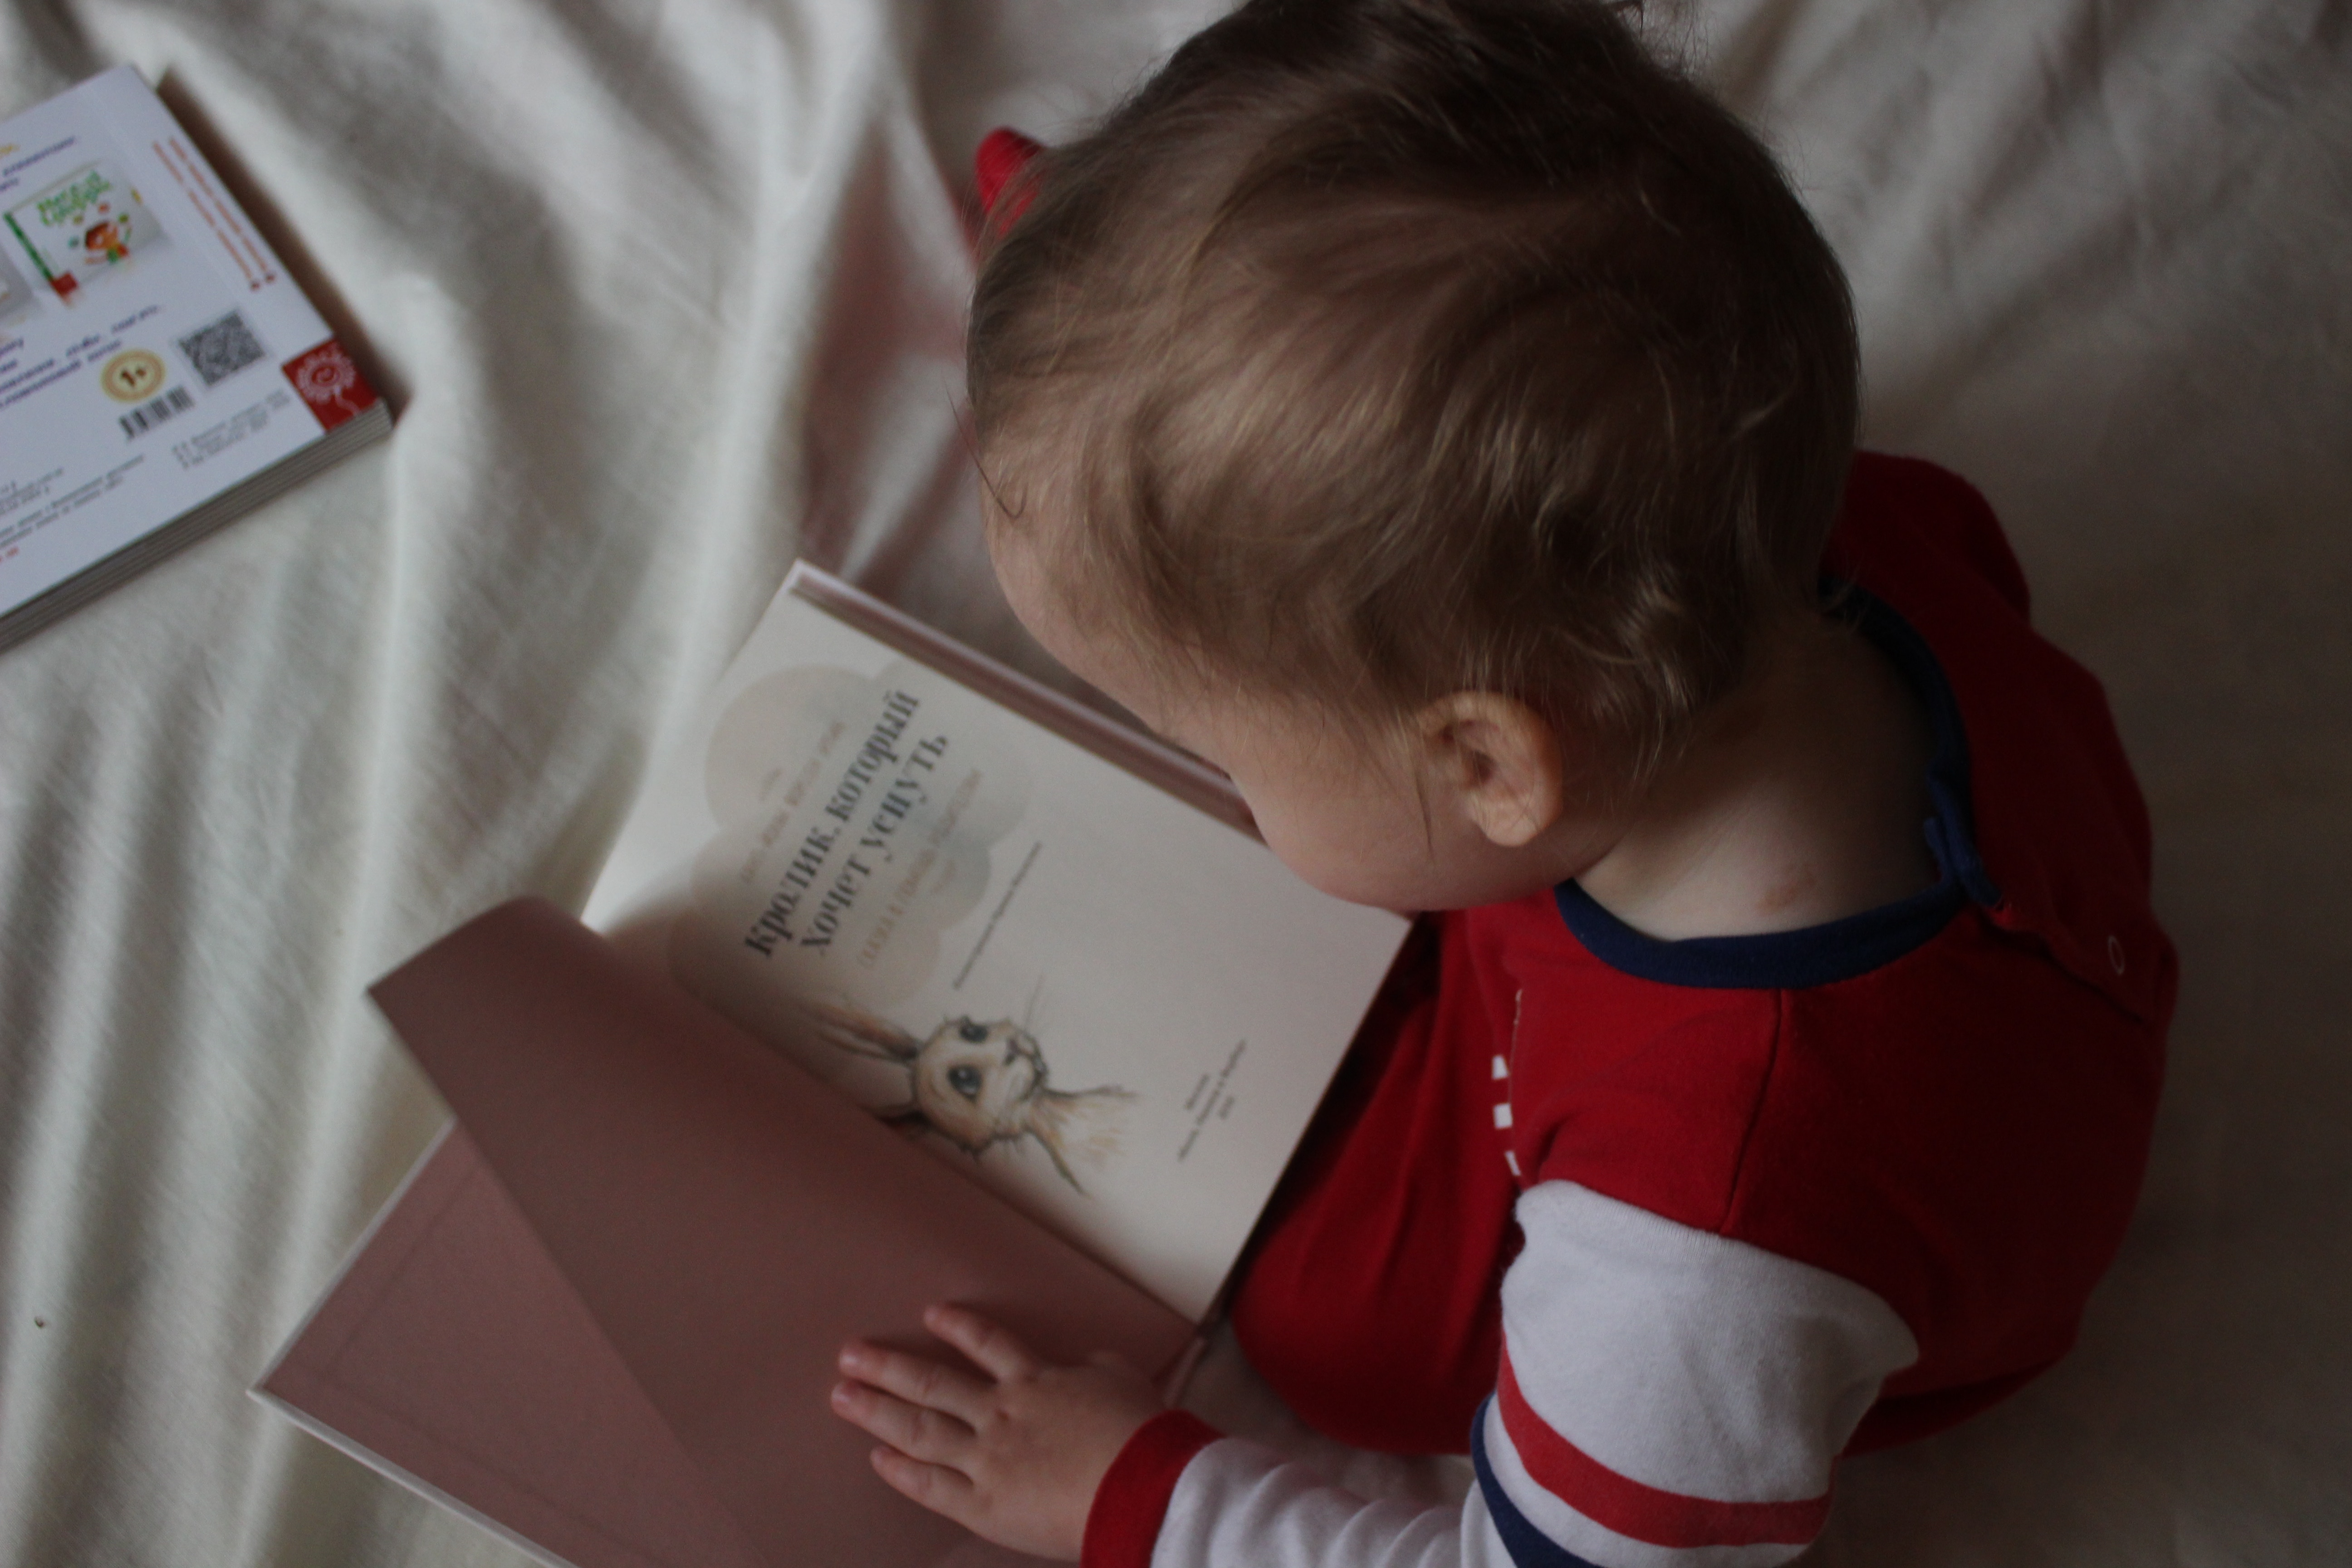 Little baby sitting on a bed reading a Russian book.